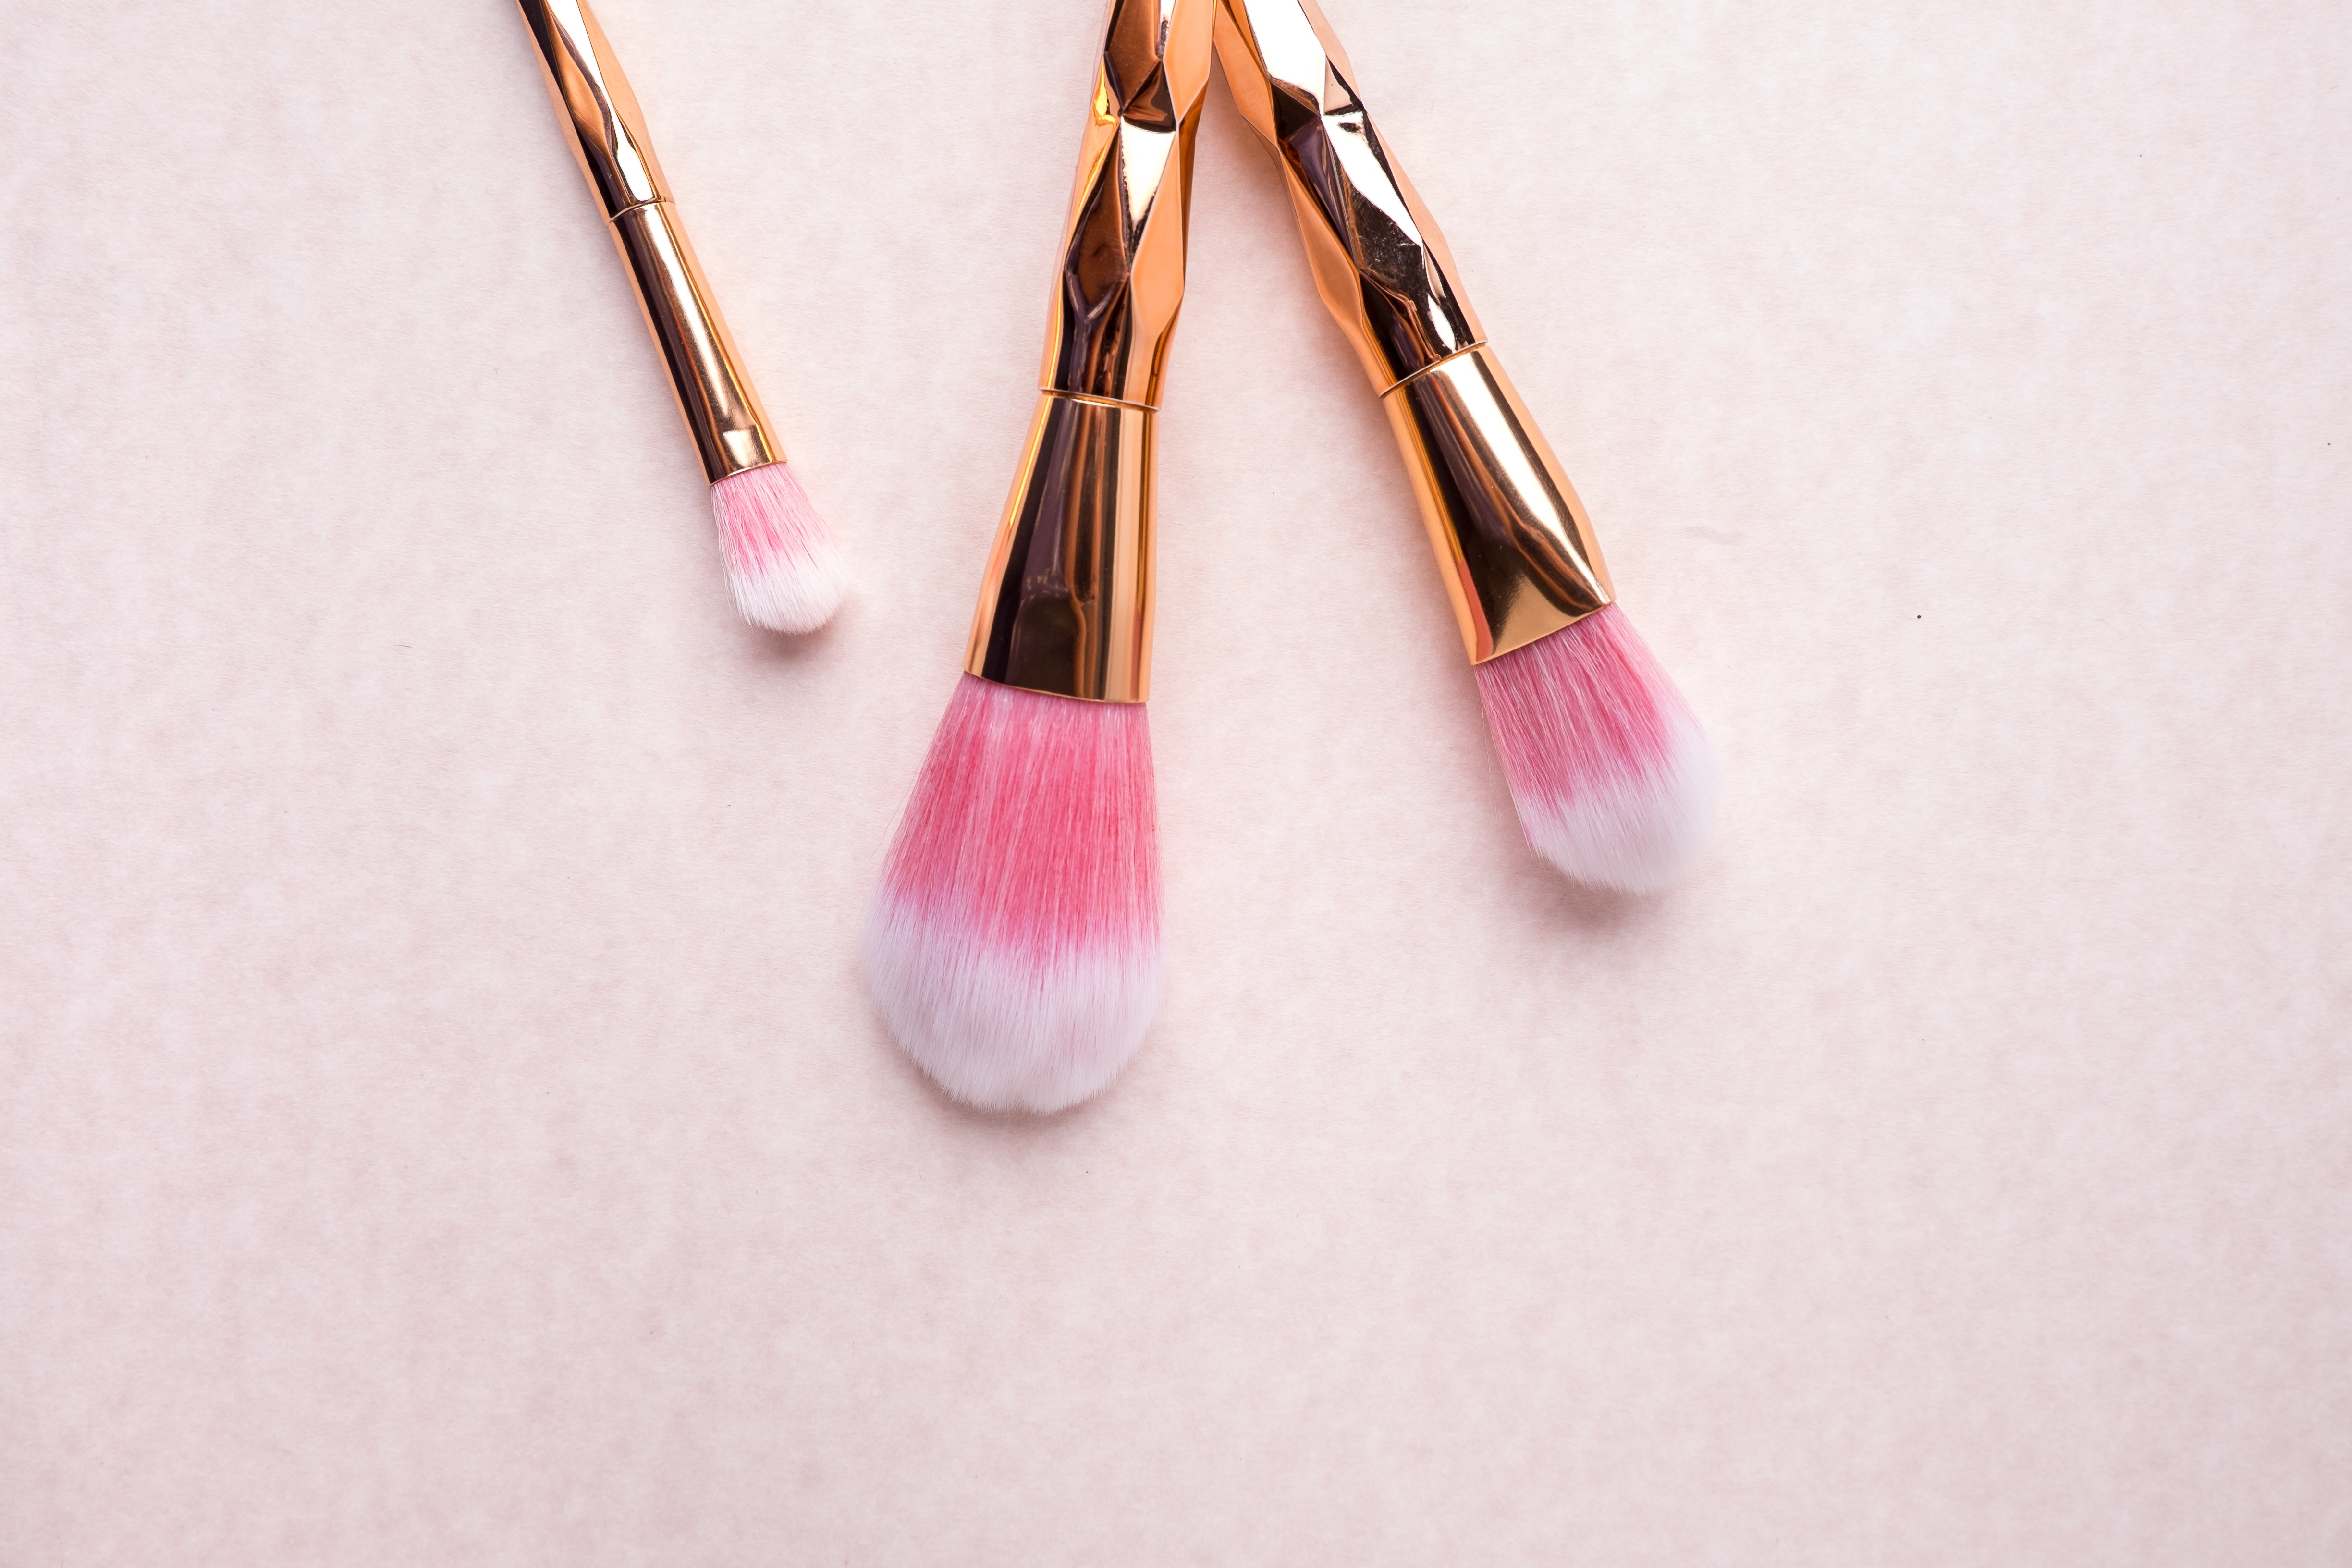 Dropship Cosmetics: Importance of Non-toxic & Organic Beauty Products